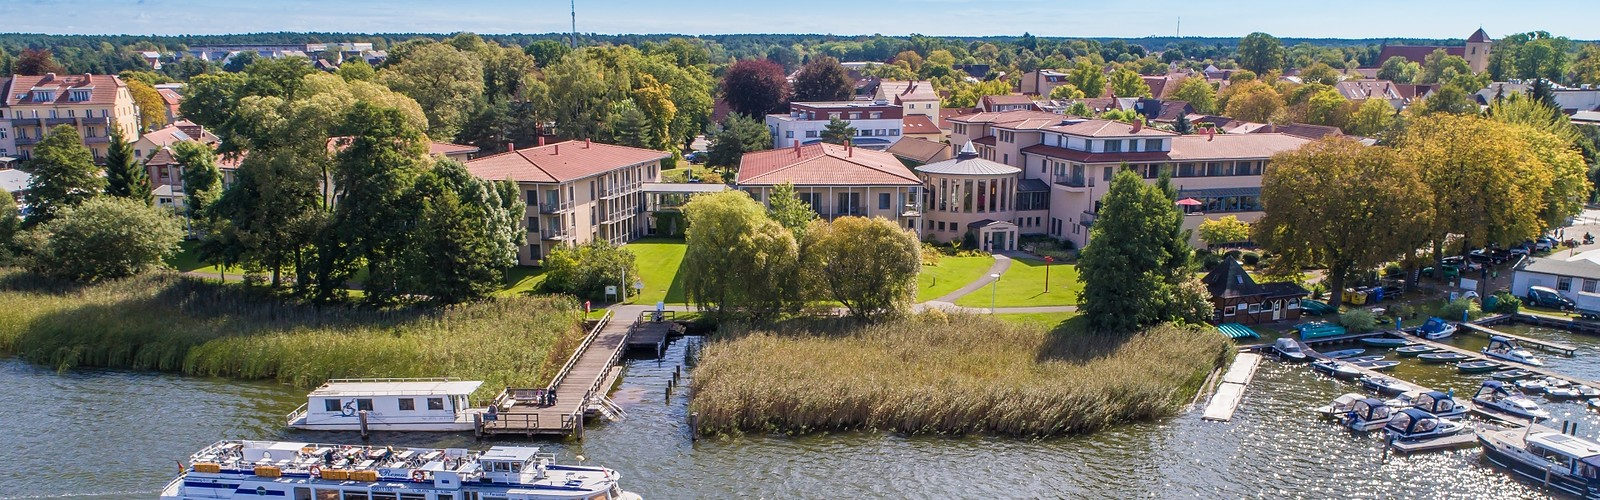 View from the water, photo: Seehotel Rheinsberg